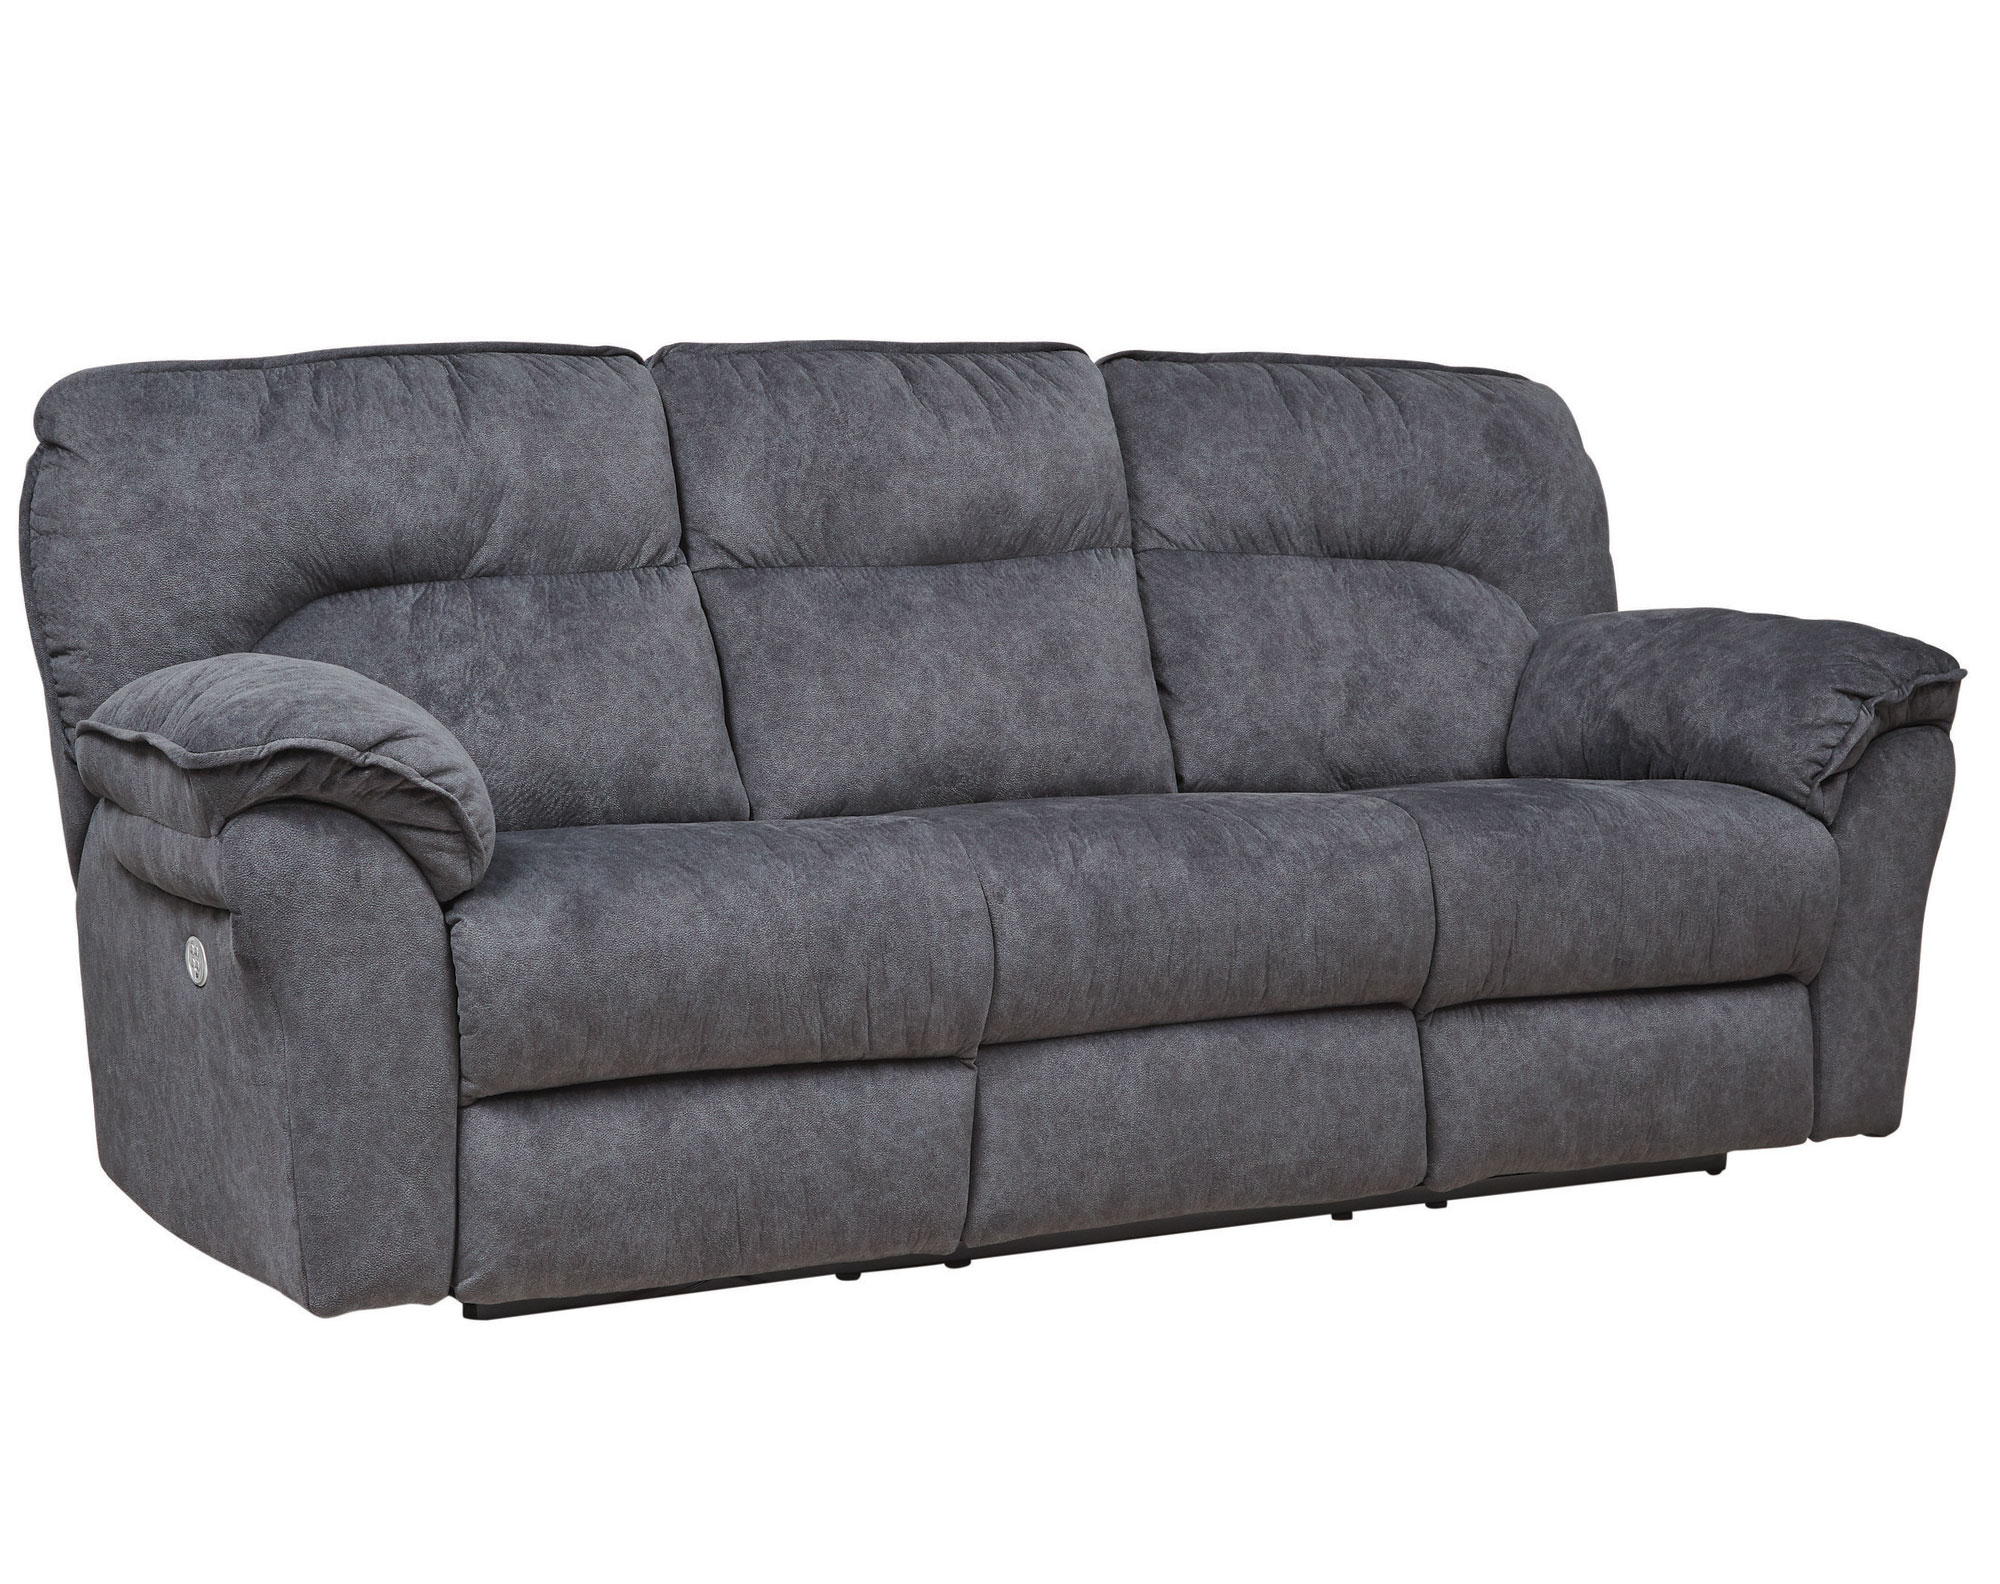 Picture of: Full Ride 96 Double Reclining Sofa 140 Sofas And Sectionals